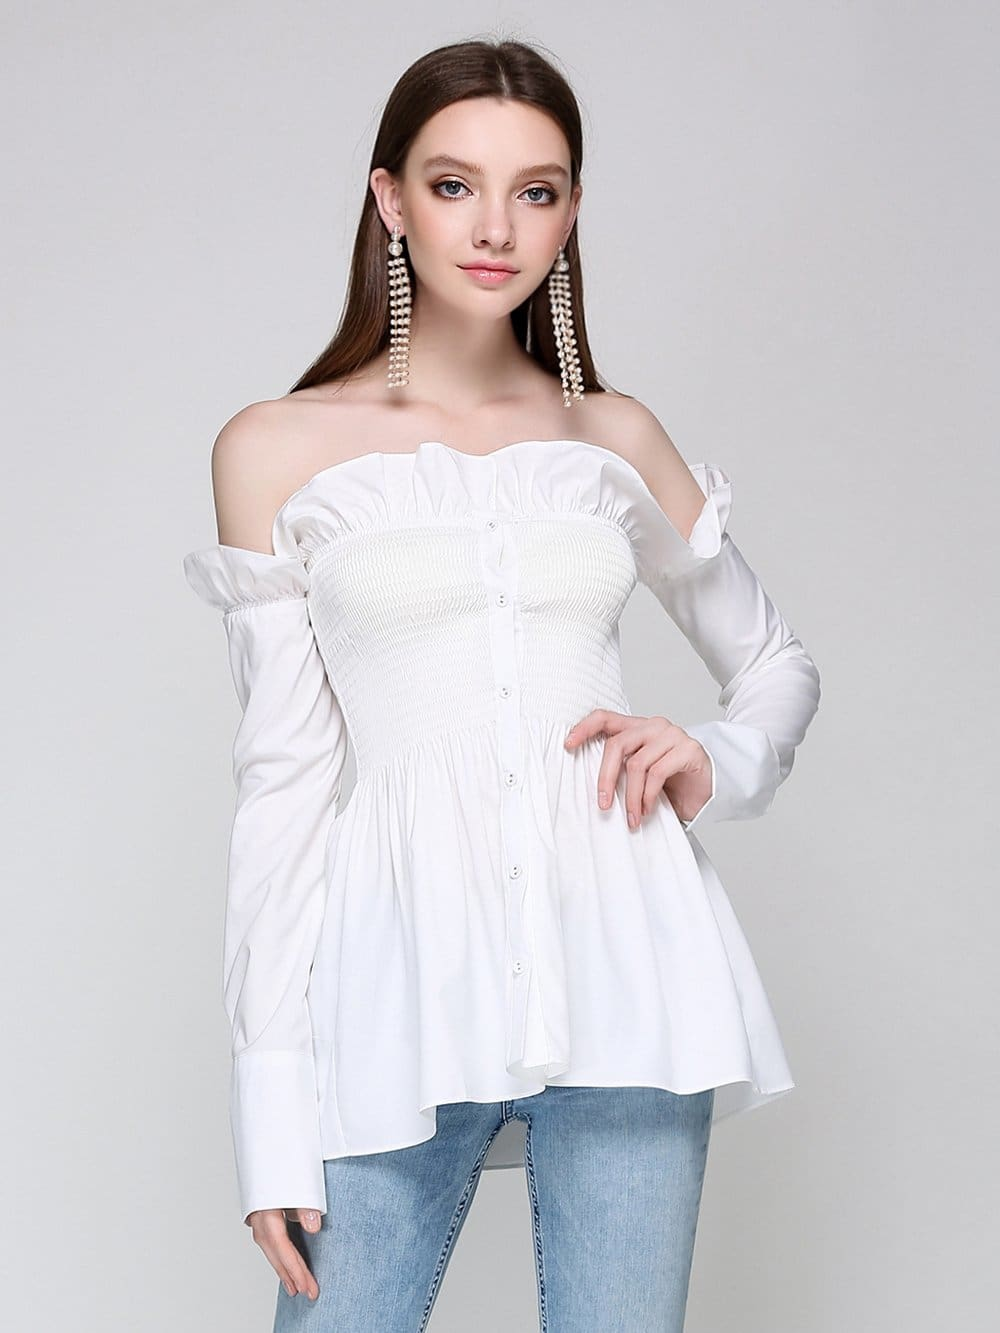 802f133b99b4d5 White Off The Shoulder Tops Long Sleeve